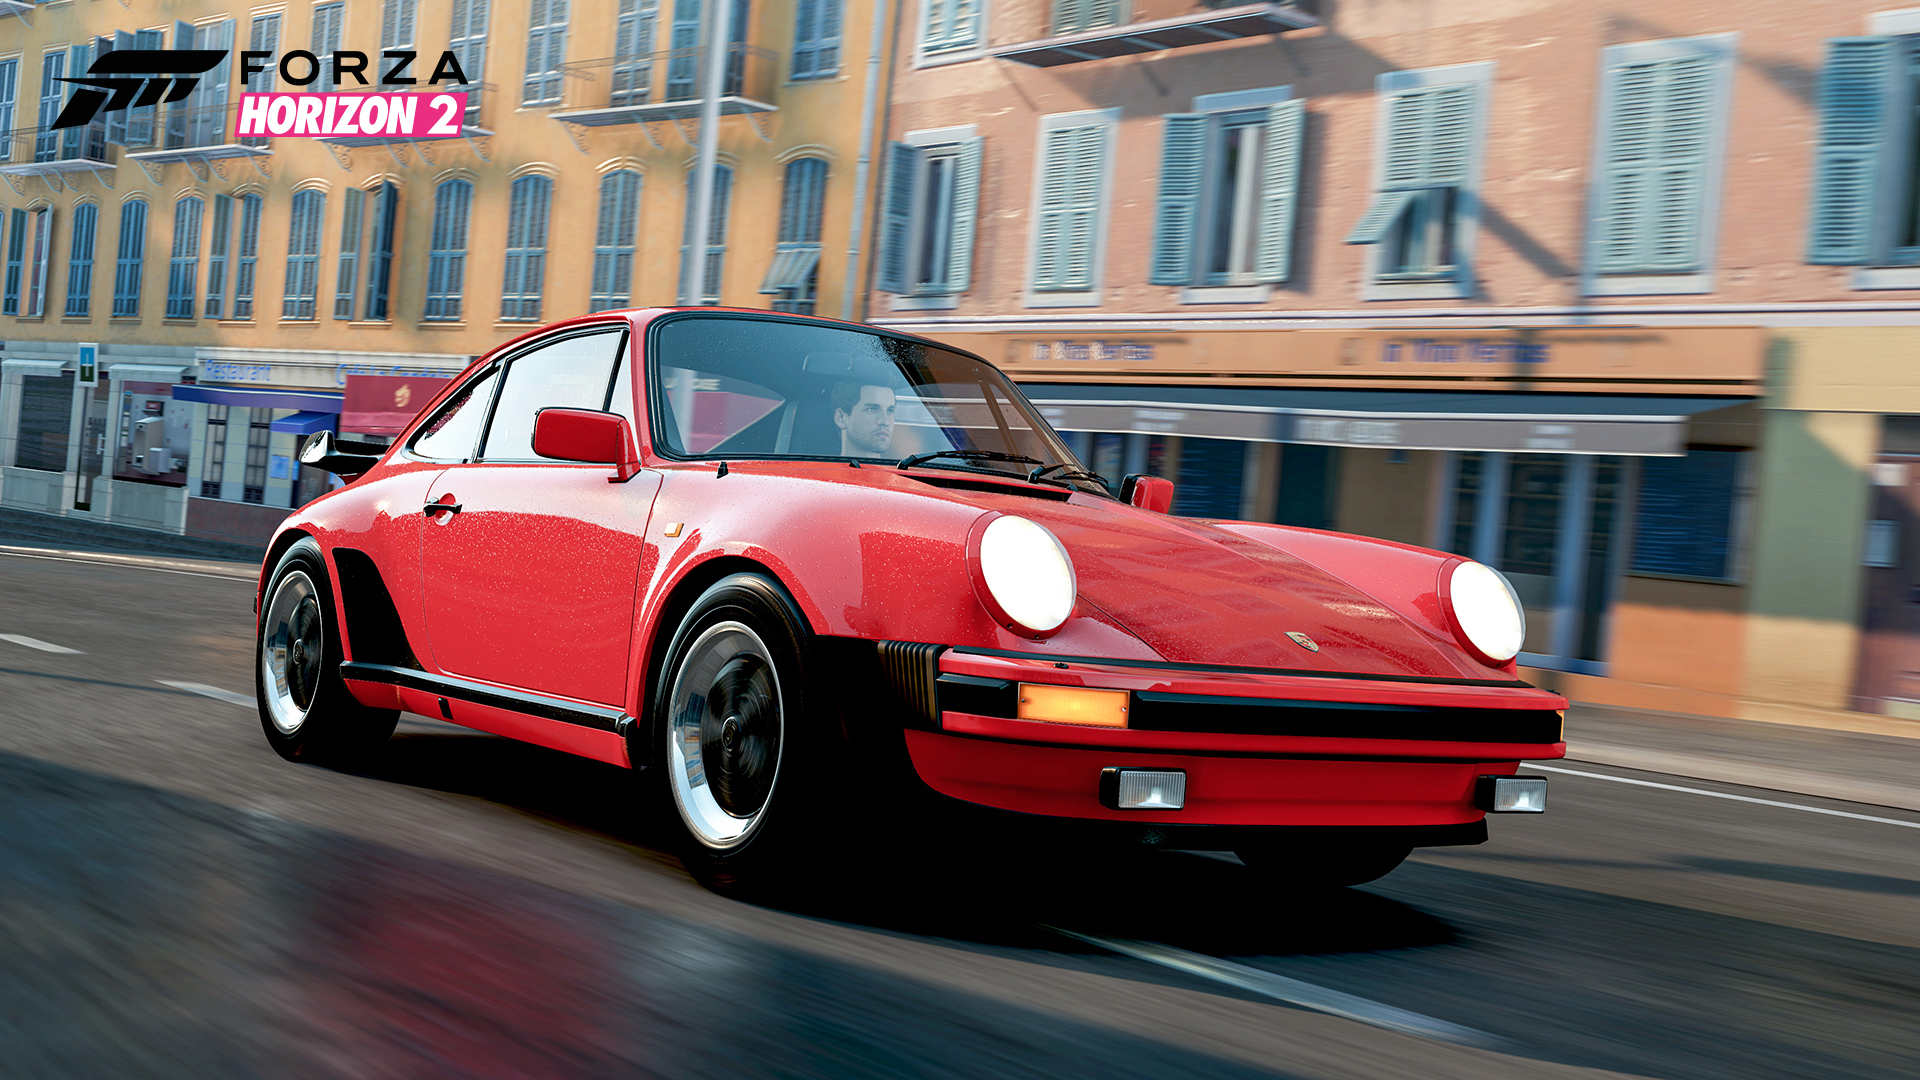 Porsche Joins Forza Horizon Lineup With Cars